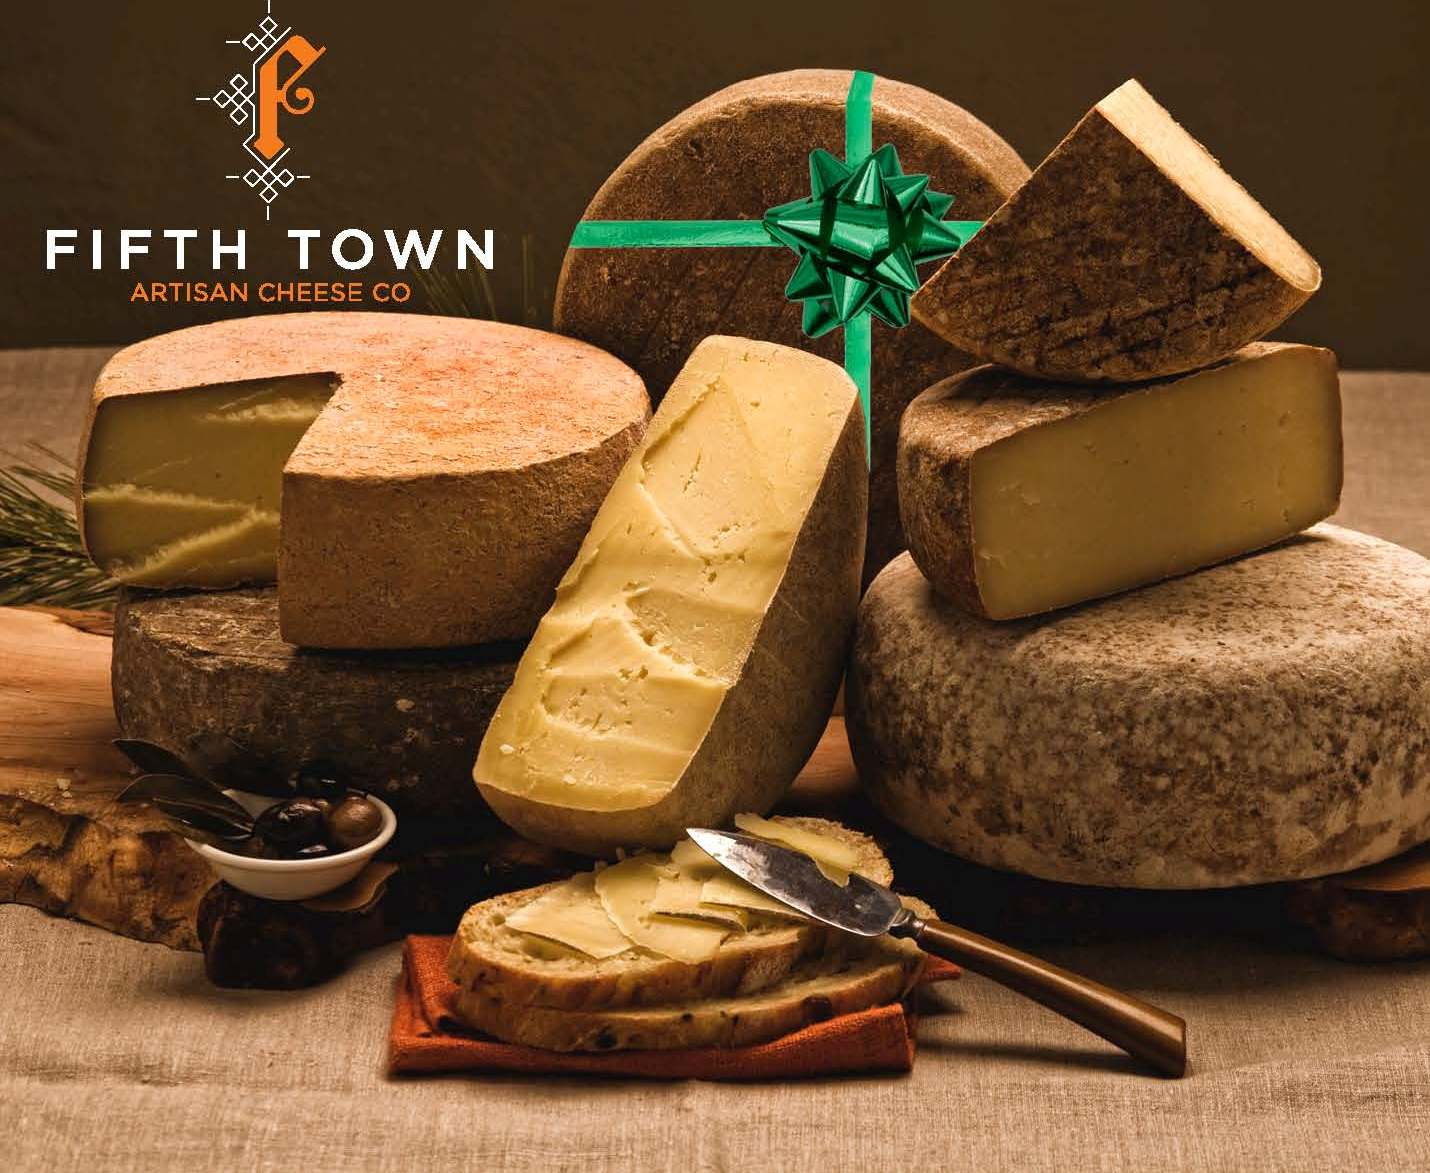 fifthtown cheese